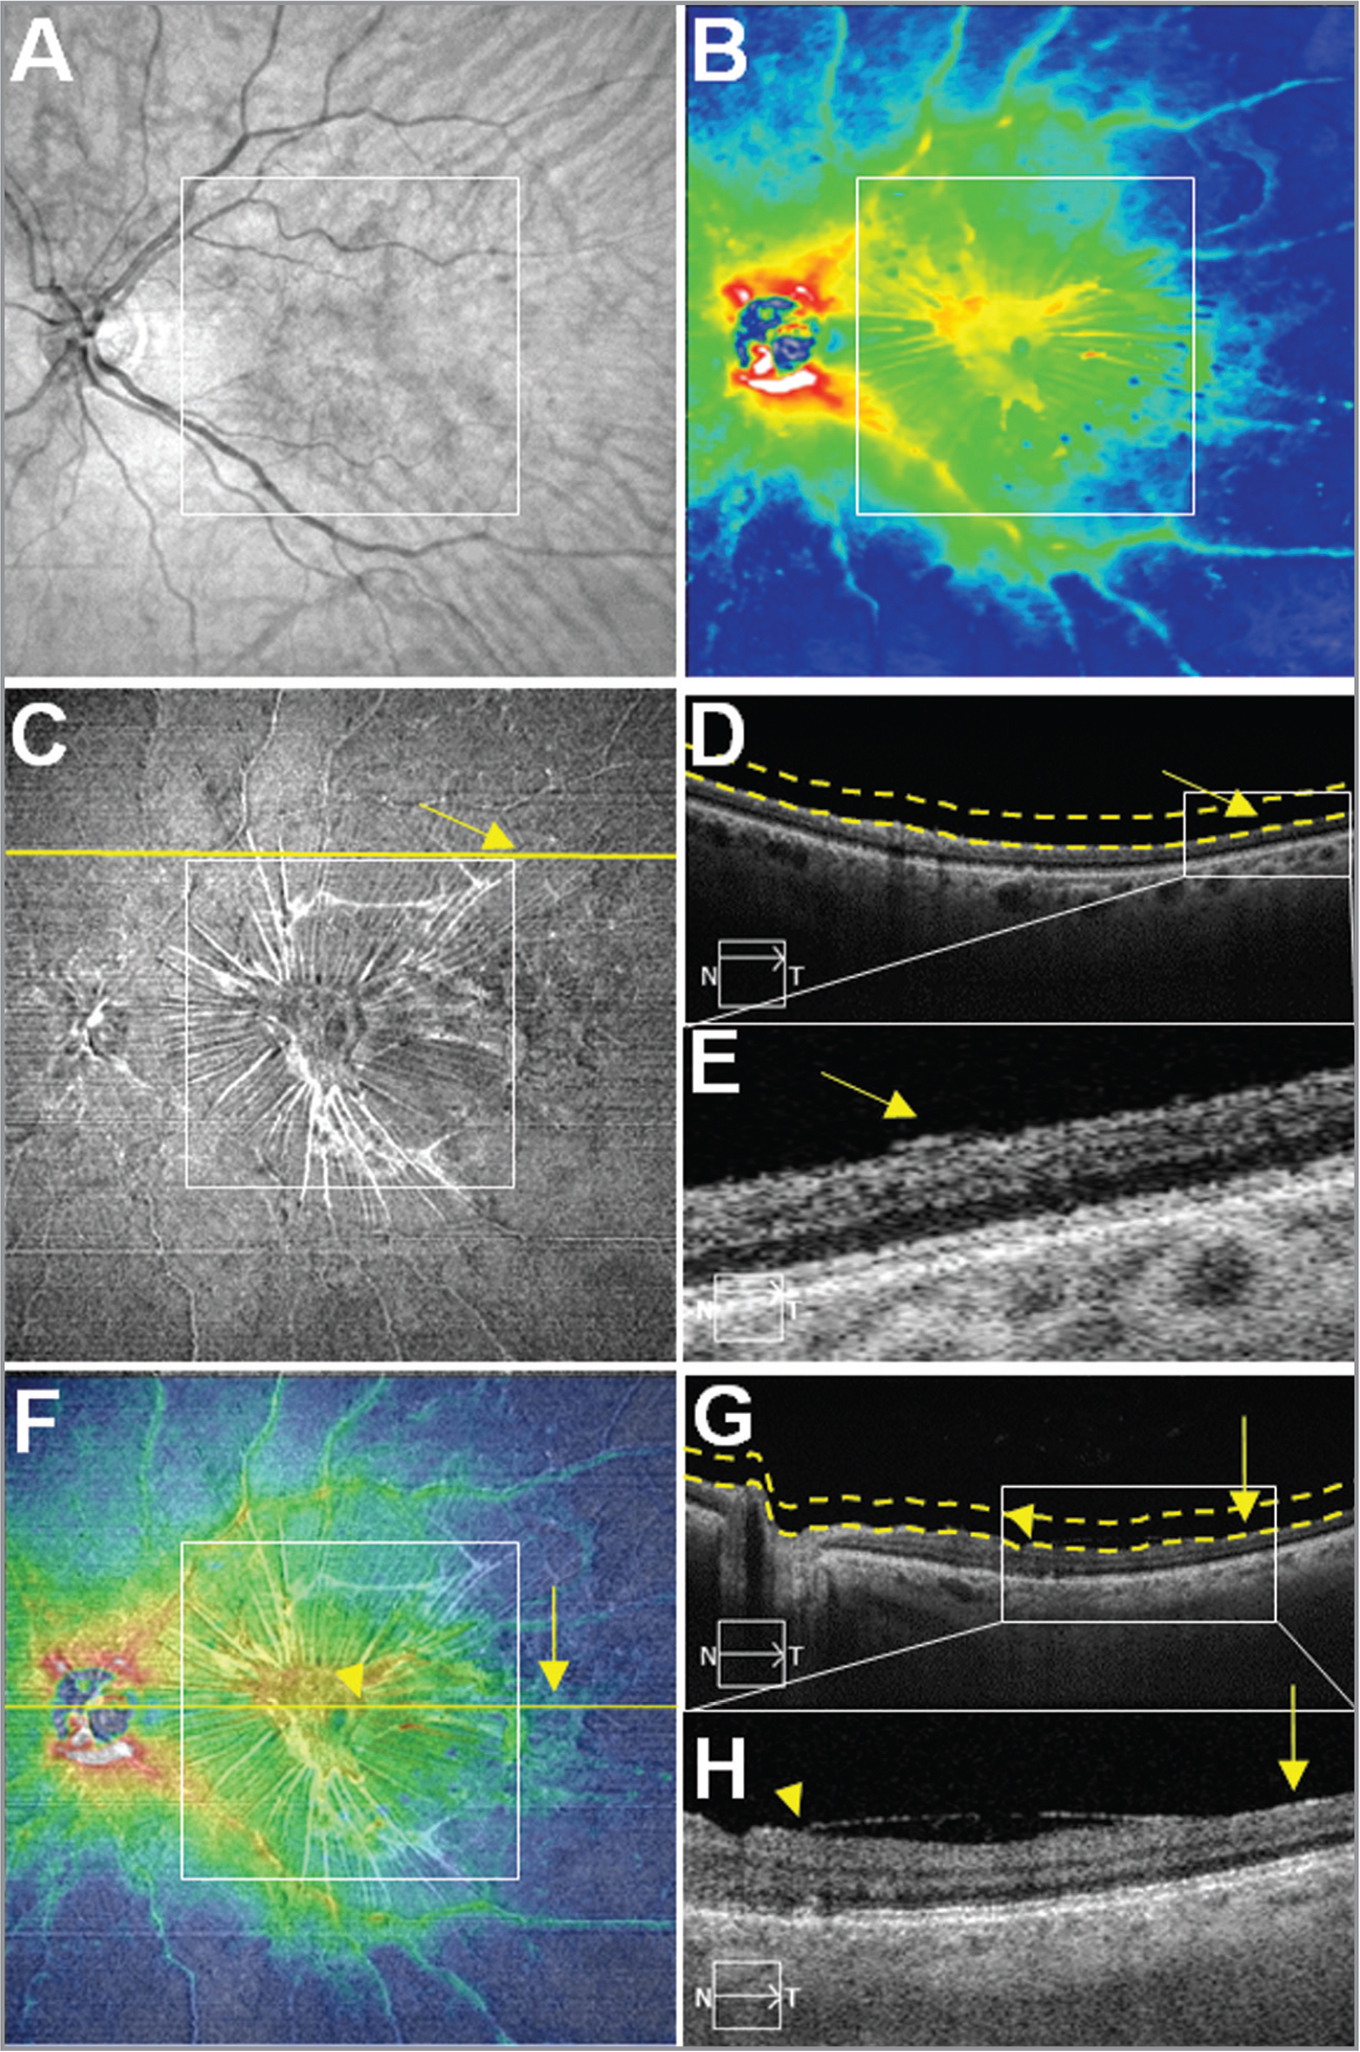 Case No. 2: Multi-segmented images from a single 12 mm × 12 mm swept-source optical coherence tomography (SS-OCT) scan of an epiretinal membrane (ERM) in the left eye of a 68-year-old woman. The white square boxes centered on the fovea in panels A, B, C, and F represent a 6 mm × 6 mm field of view (FOV). (A) OCT fundus image. Notice some vessel tortuosity in the macular area. (B) Retinal thickness map (RTM). Note the disappearing of the foveal contour. Radiation and ERM striae can be appreciated. (C) Vitreoretinal interface (VRI) en face image. The image shows a hyperreflective ERM, which correspond to ERM striae centrifugally spreading from the fovea beyond the 6 mm × 6 mm FOV. Yellow arrows in images C, D, and E emphasize potential traction and adherence of the ERM outside the 6 mm × 6 mm FOV. Note that the yellow arrow points to the edge of the ERM. (D) B-scan corresponding to the yellow line outside the 6 mm × 6 mm white square shown in image C. Dashed lines define the upper and lower boundaries of the VRI en face slab. (E) Magnification of the white rectangle of the image D. This demonstrates the extent of the ERM outside the 6 mm × 6 mm FOV. (F) Overlay of Panel B (60% transparency) on top of Panel C. Yellow horizontal line represents the foveal B-scan. Yellow vertical arrow in Panels F, G, and H highlight the extent of the ERM outside the 6 mm × 6 mm FOV, whereas the yellow arrowheads indicate the presence of the ERM within the 6 mm × 6 mm FOV. (G) Foveal B-scan. Dashed lines define the upper and lower boundaries of the VRI en face slab. (H) Magnified B-scan from within the white square shown in Panel G. Observe the massive extension of the ERM from inside the 6 mm × 6 mm FOV (yellow arrowhead) to outside the 6 mm × 6 mm FOV (yellow vertical arrow).